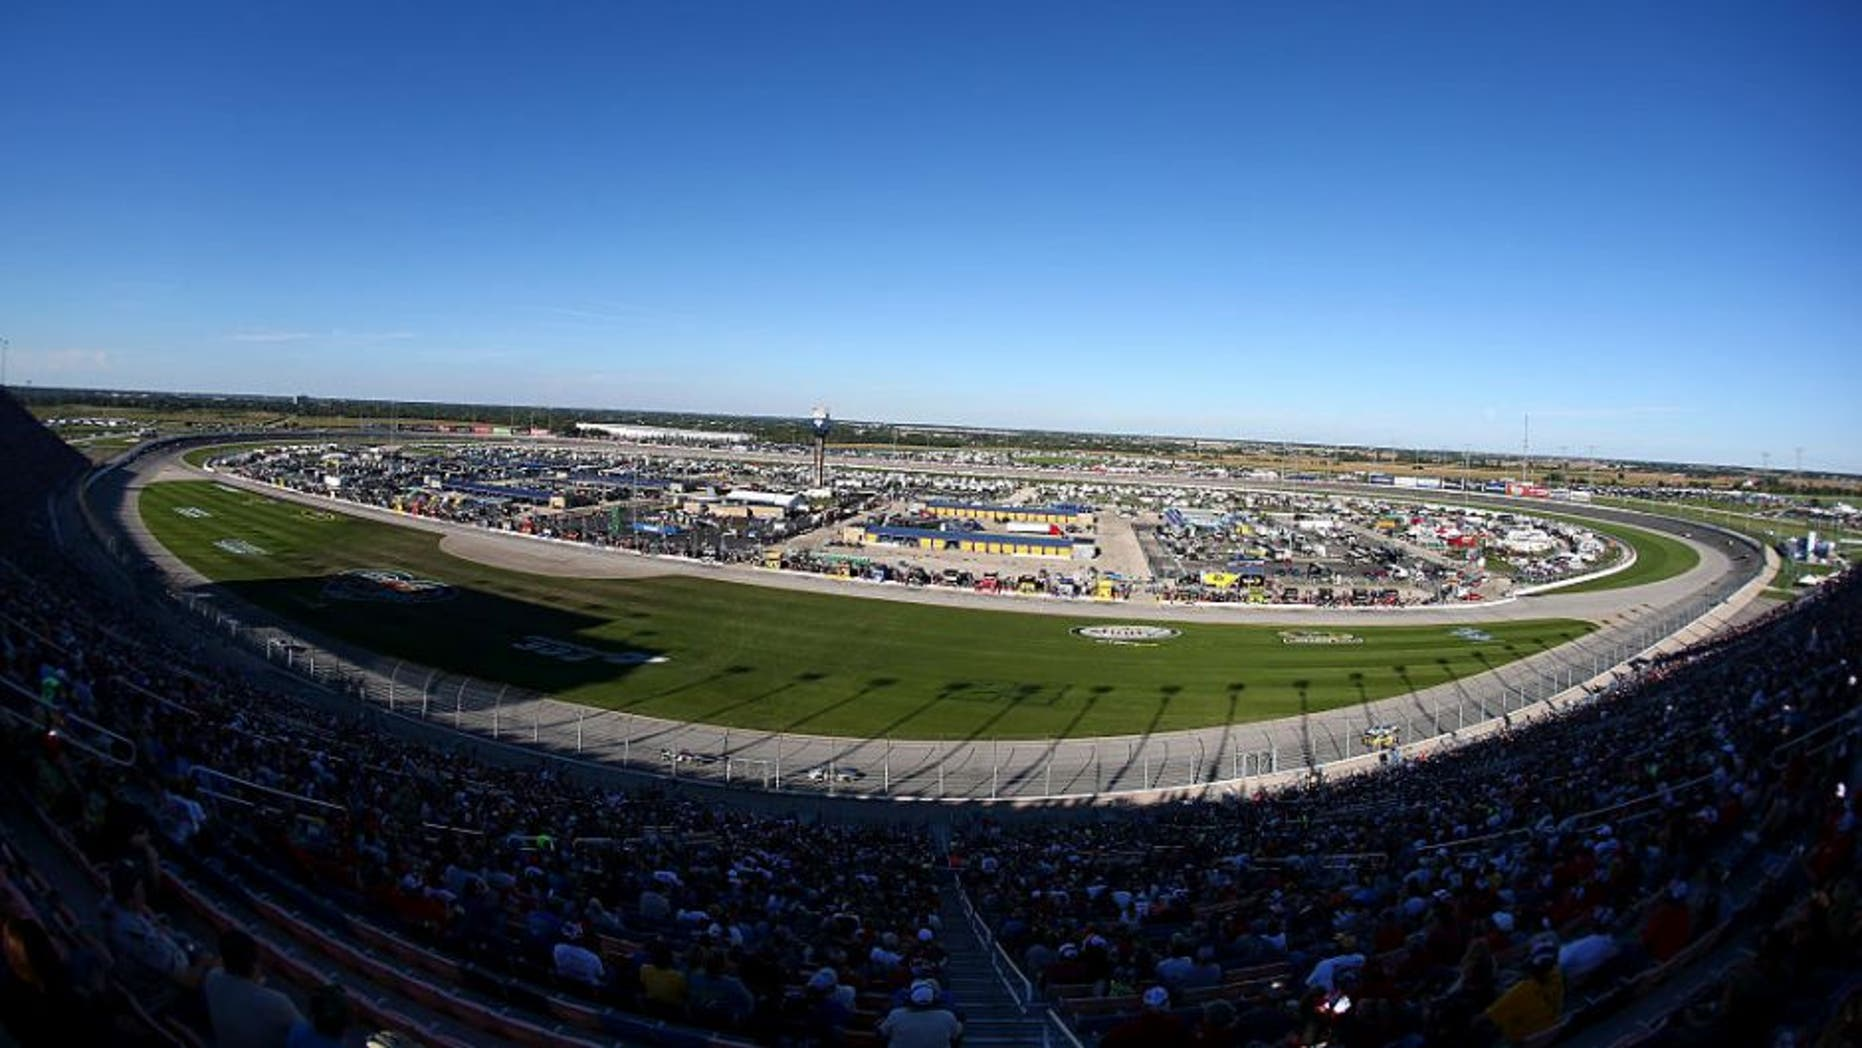 Race fans cheer during the NASCAR Sprint Cup Series myAFibRisk.com 400 at Chicagoland Speedway on September 20, 2015 in Joliet, Illinois.